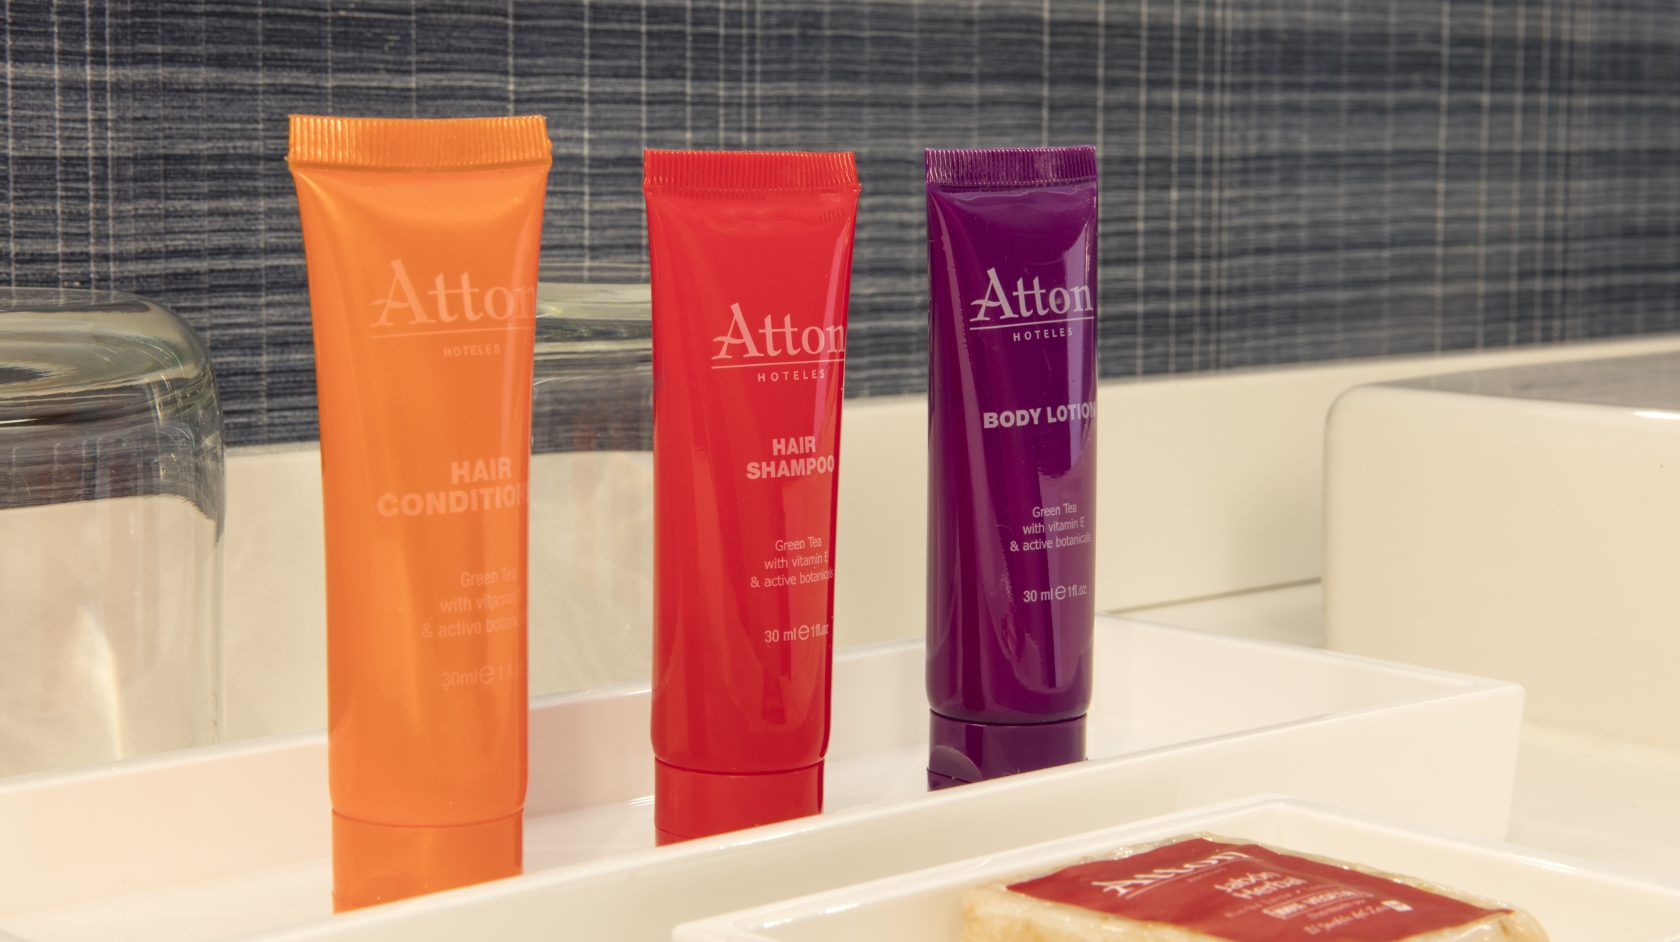 Atton Brickell Miami bathroom amenities